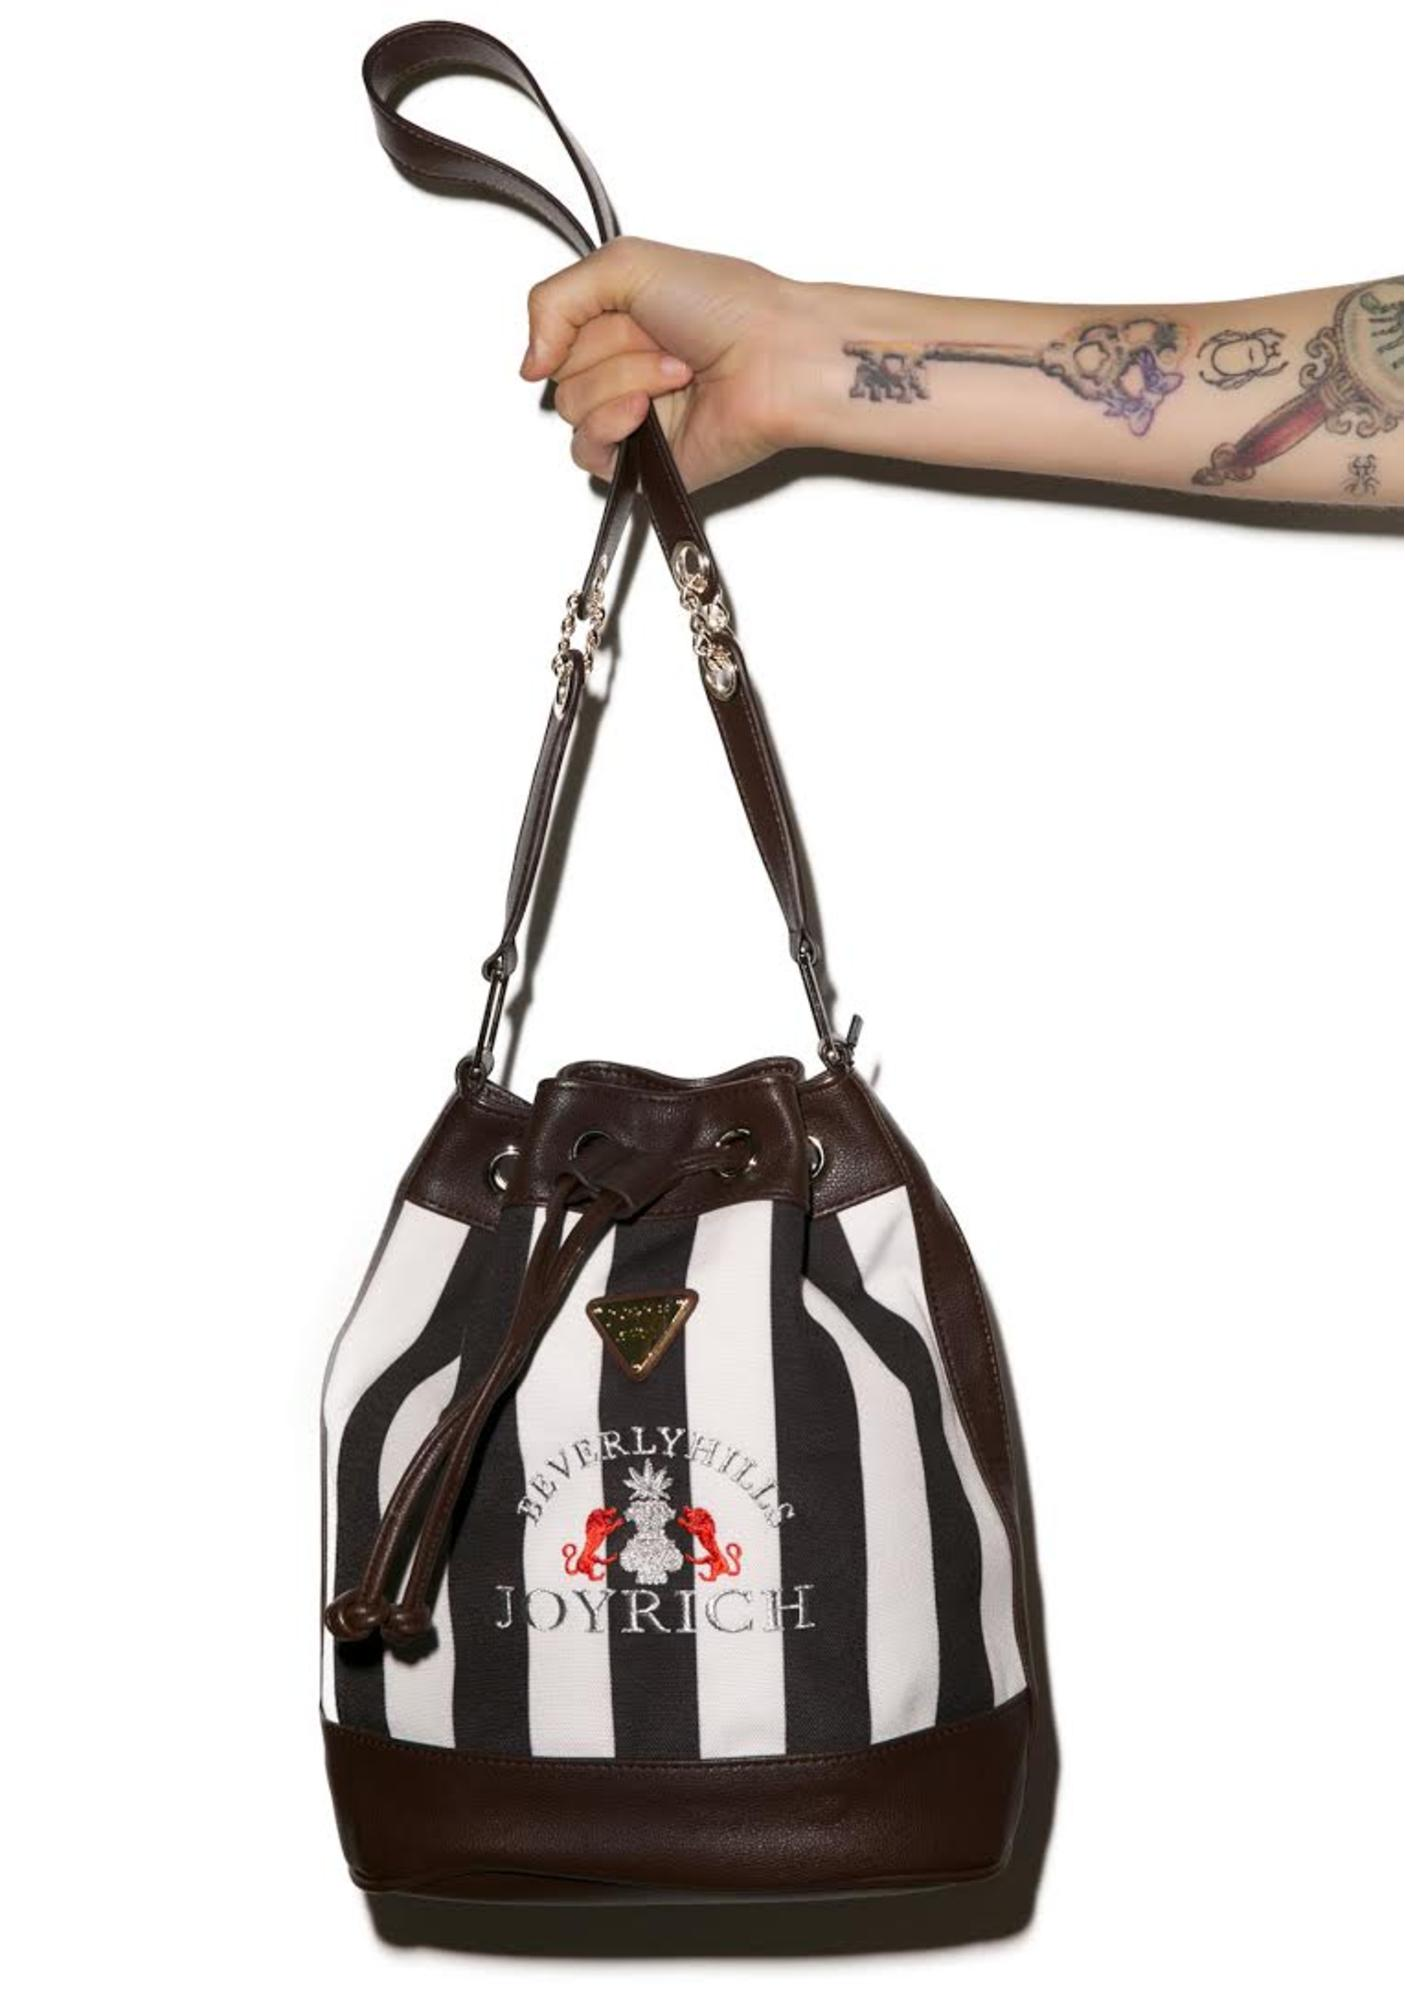 Joyrich Bold Lane Bucket Bag